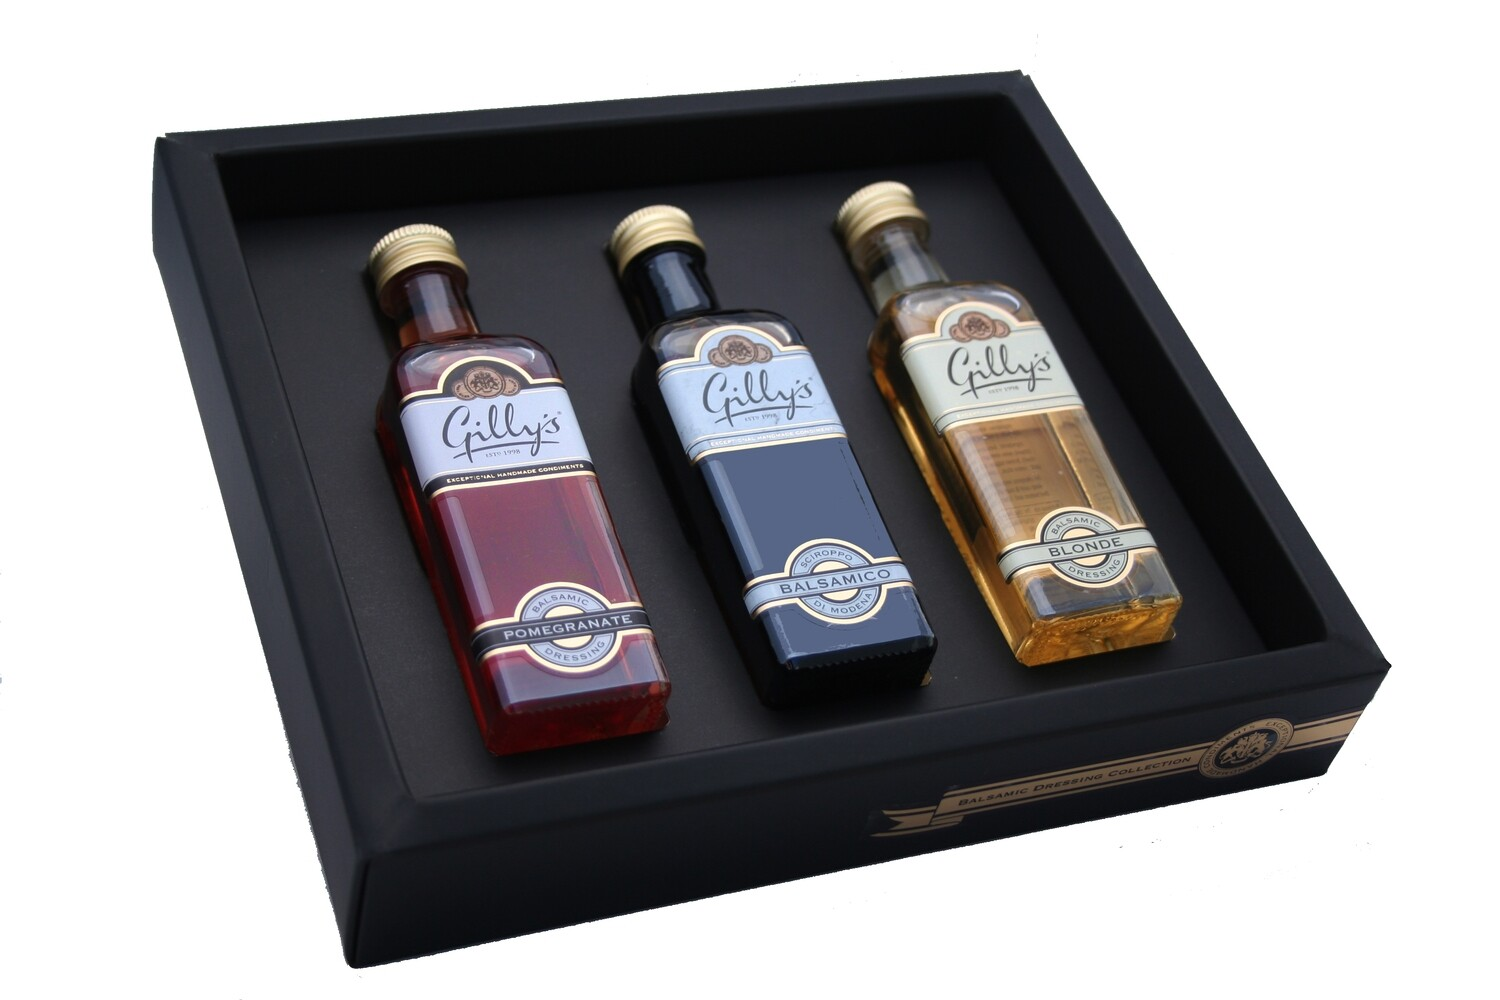 Miniature Balsamic Dressing Collection Pomegranate+Blonde+Syrup 3 x 60 ml